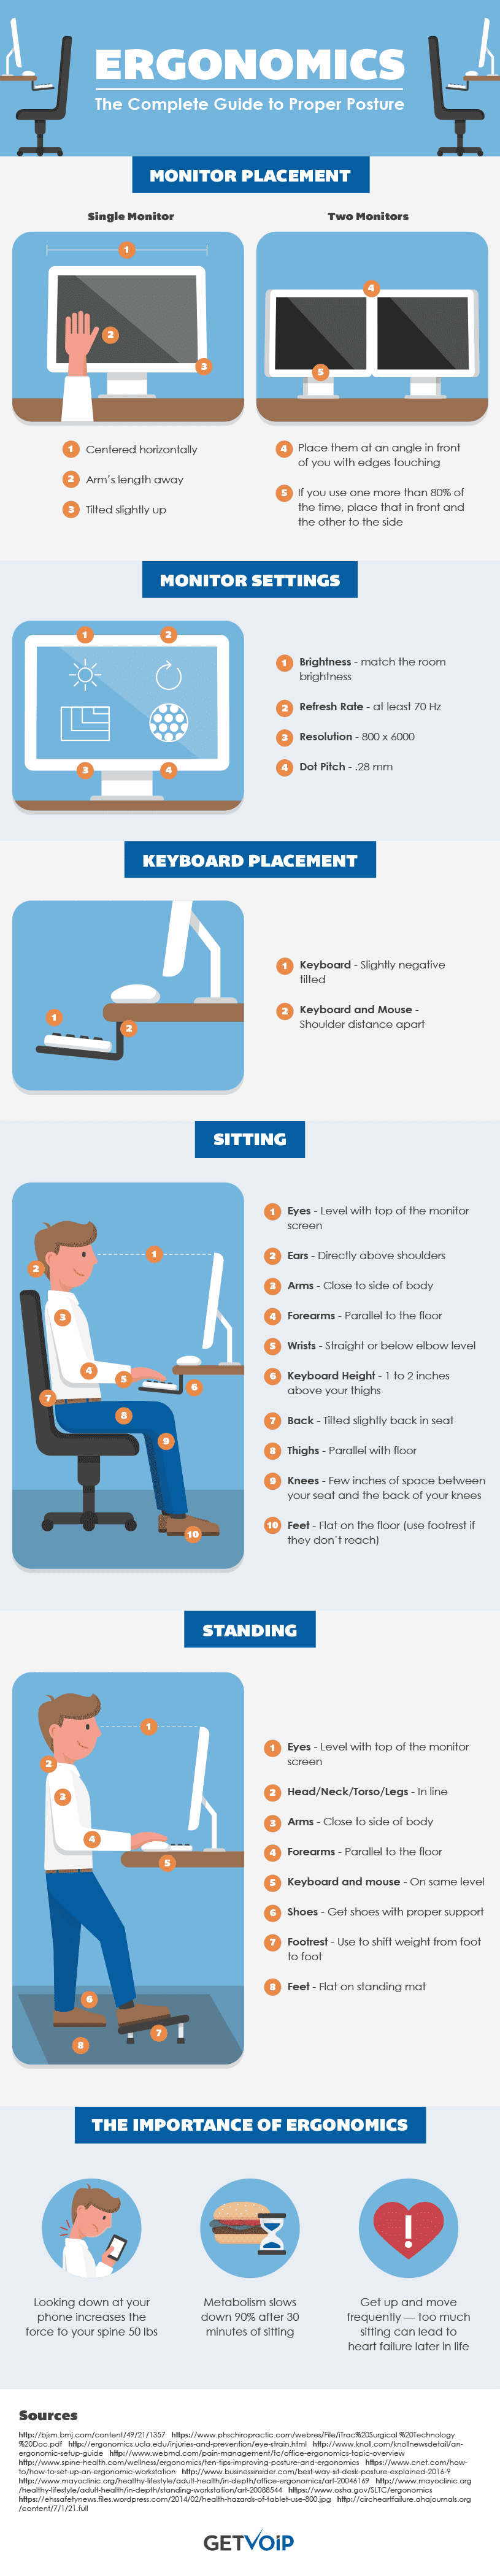 Office Ergonomics: The Complete Guide to Proper Posture